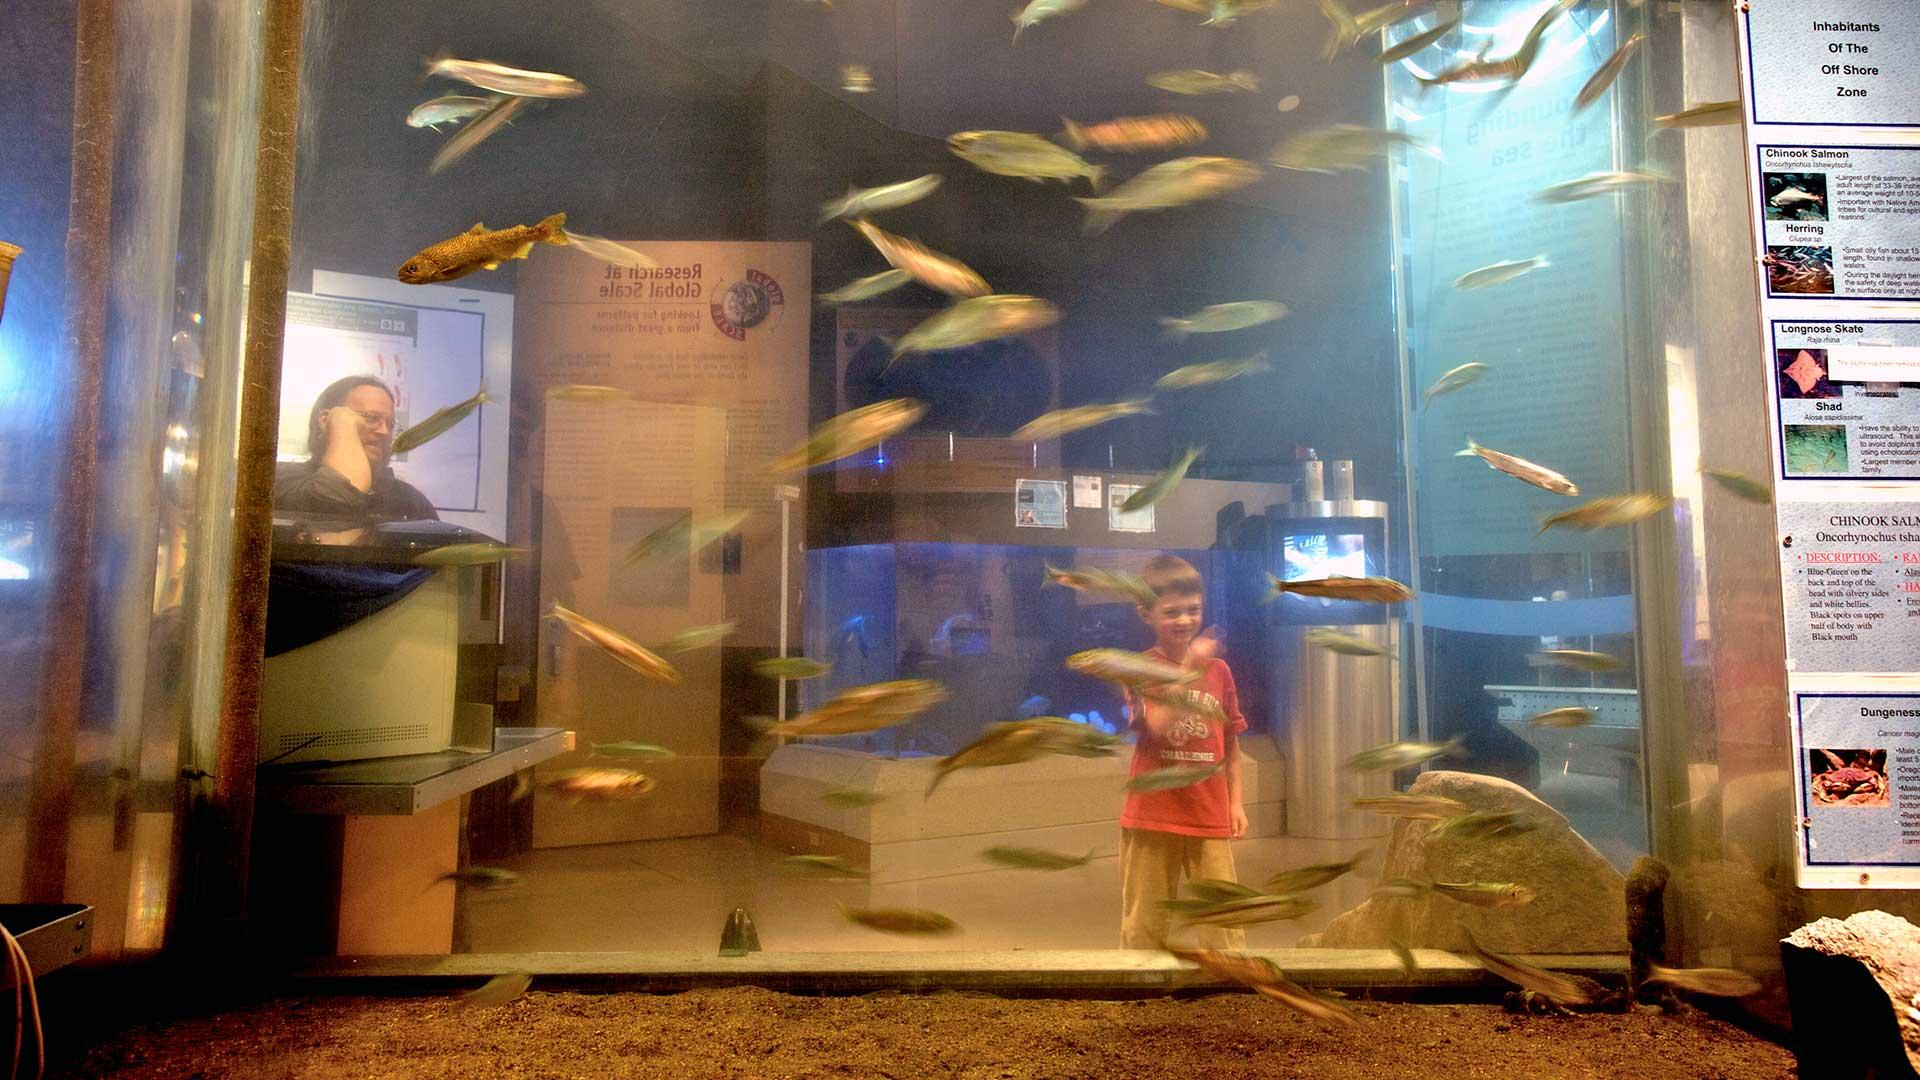 Child in front of aquarium tank